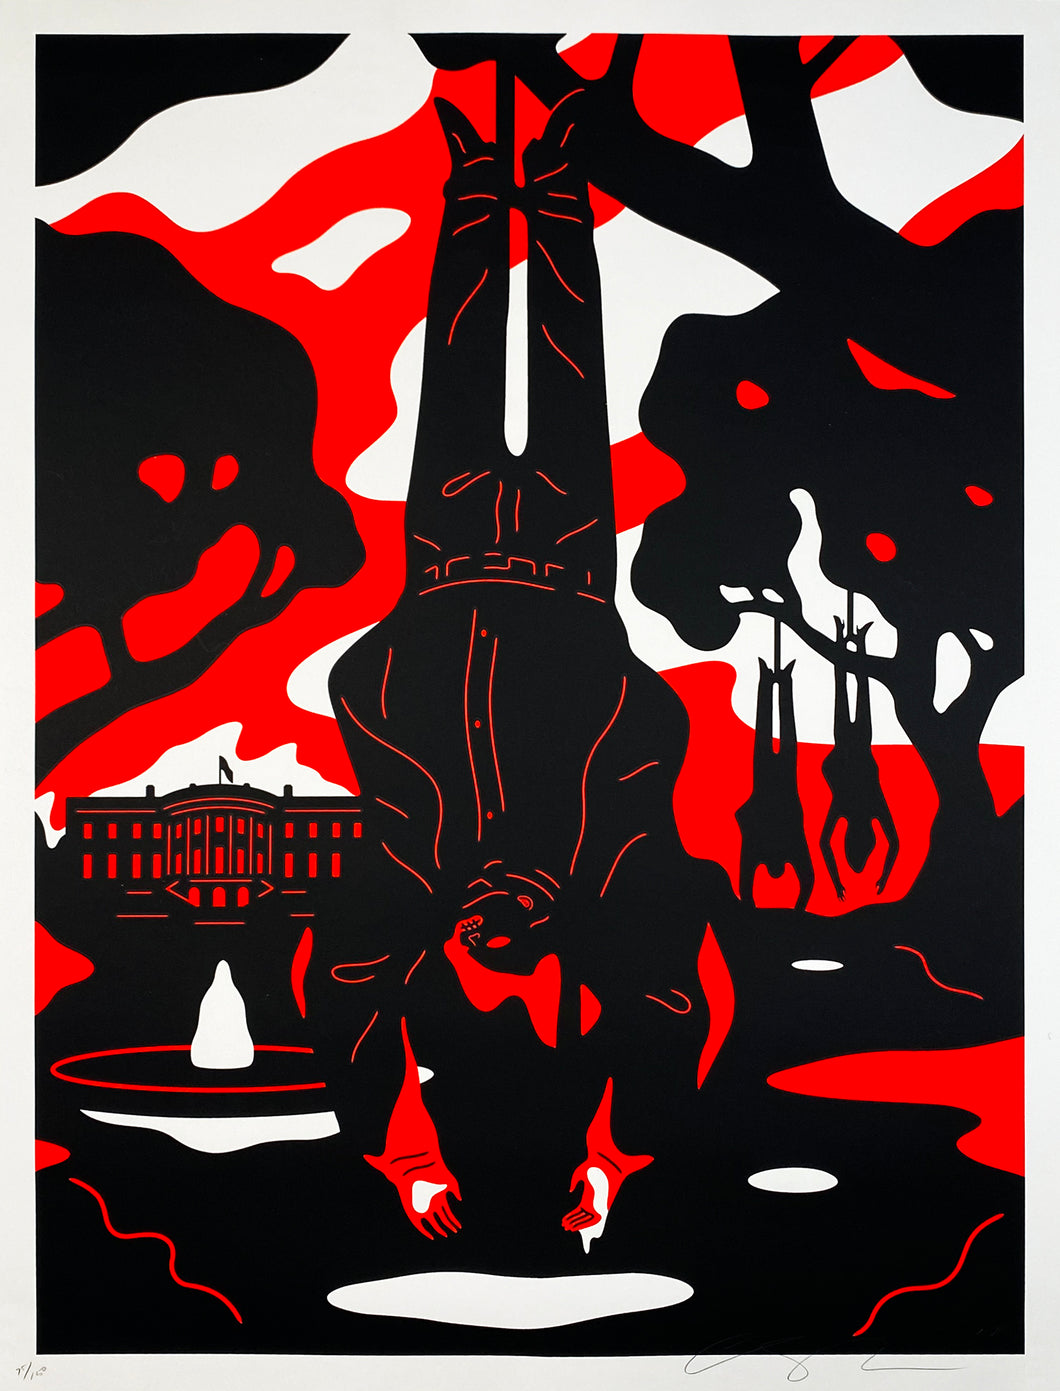 CLEON PETERSON 'Absolute Power' (anti-Trump) Silkscreen Print (2/2) - Signari Gallery